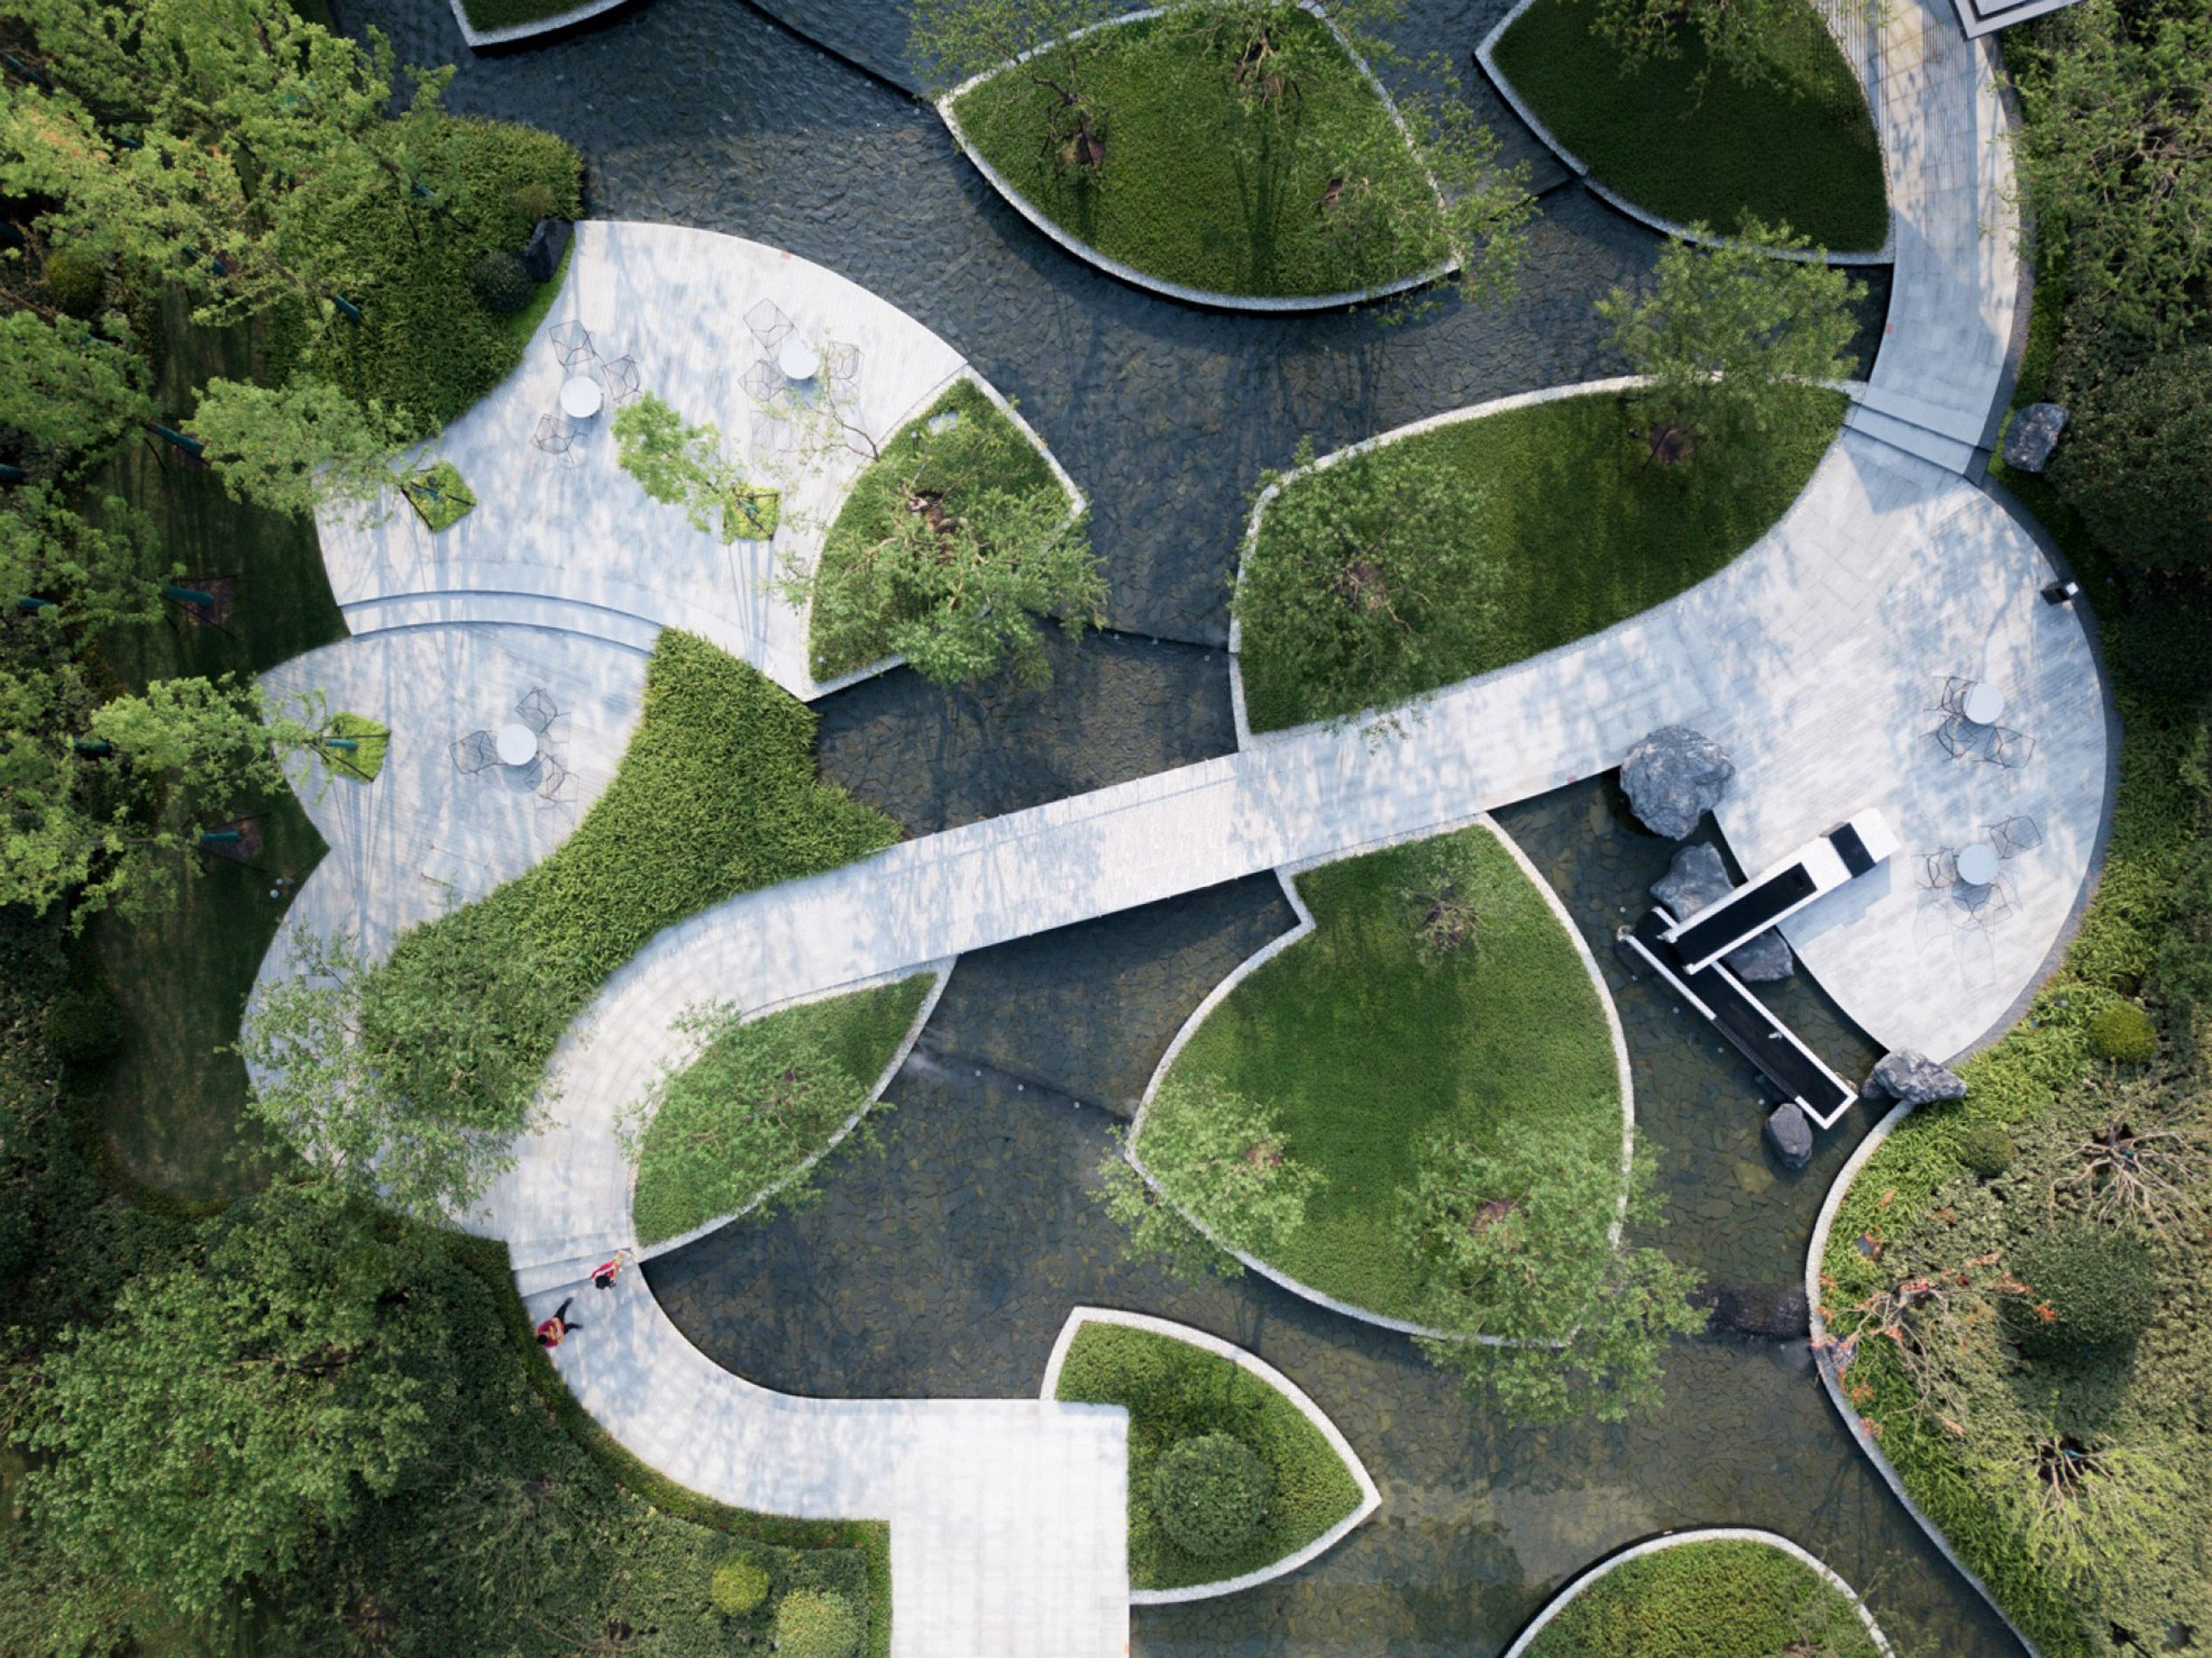 An aerial view of the gardens paths and bridges